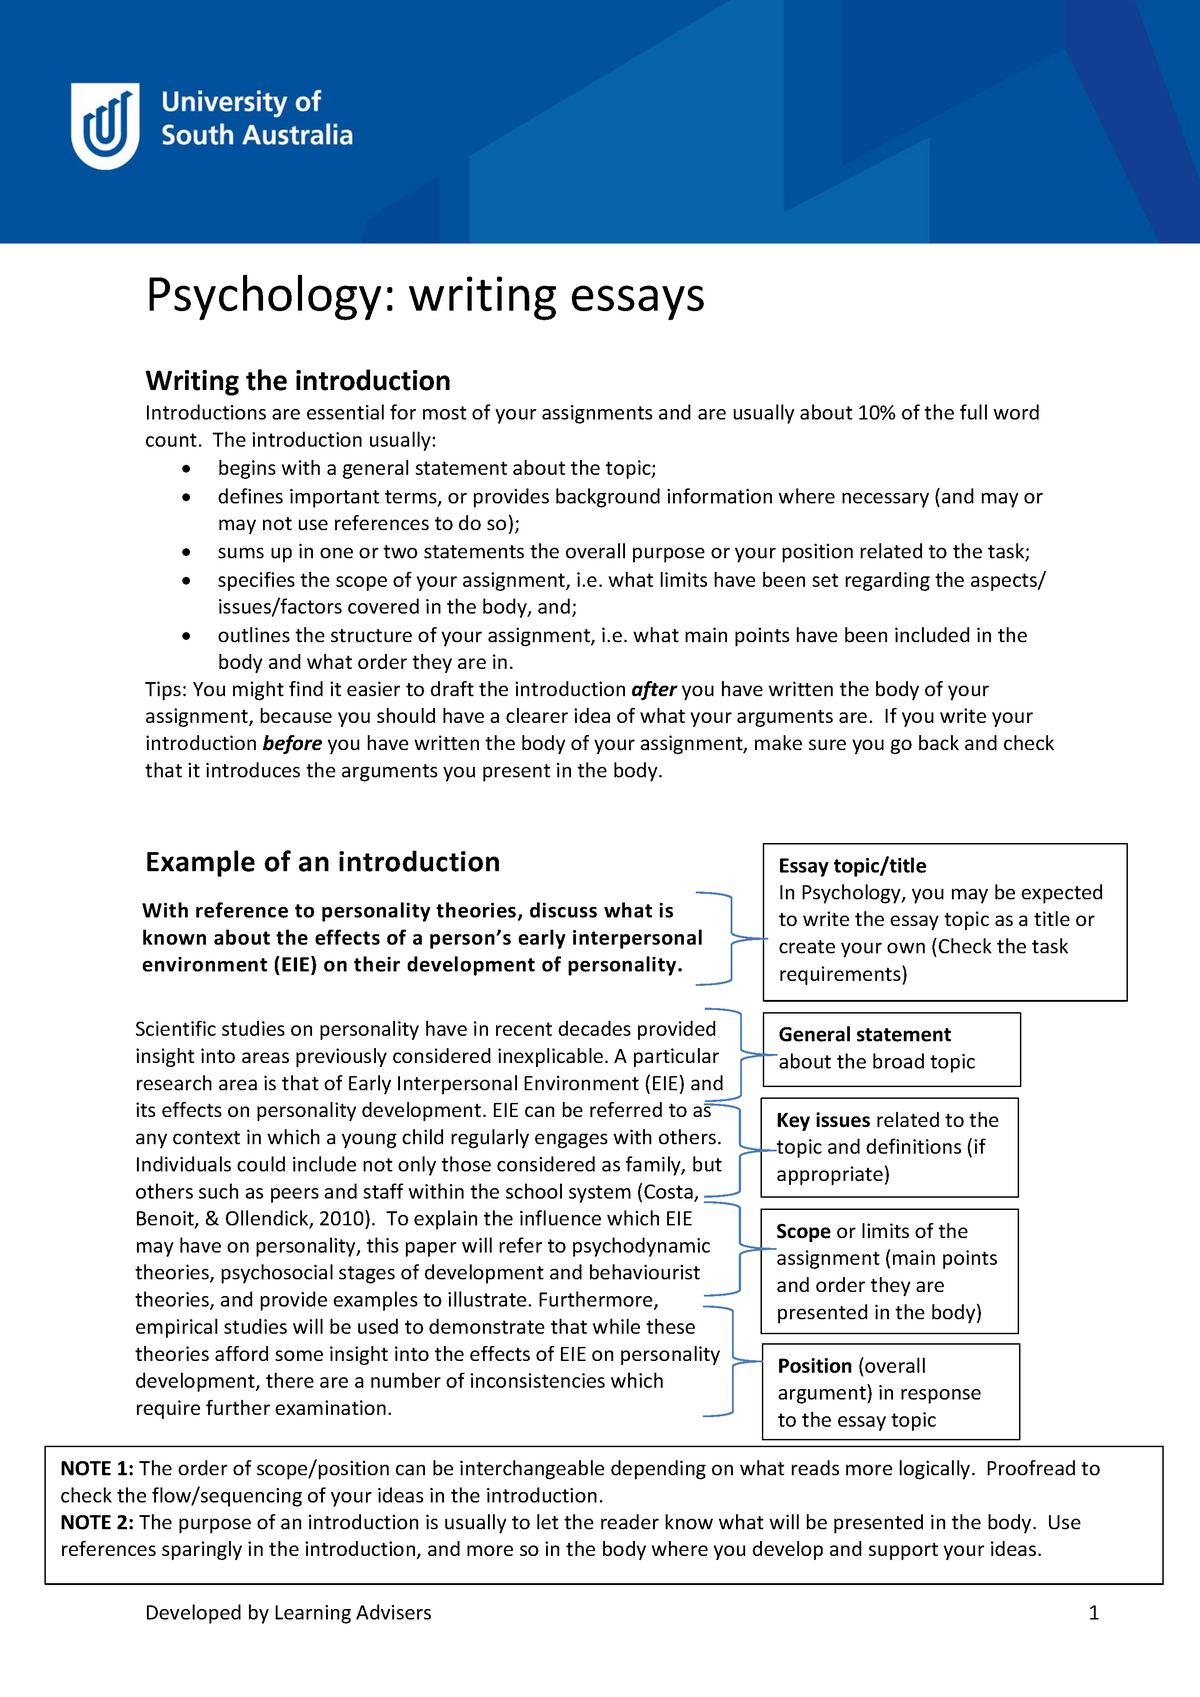 Essay Writing Guide for Psychology Students | Simply Psychology